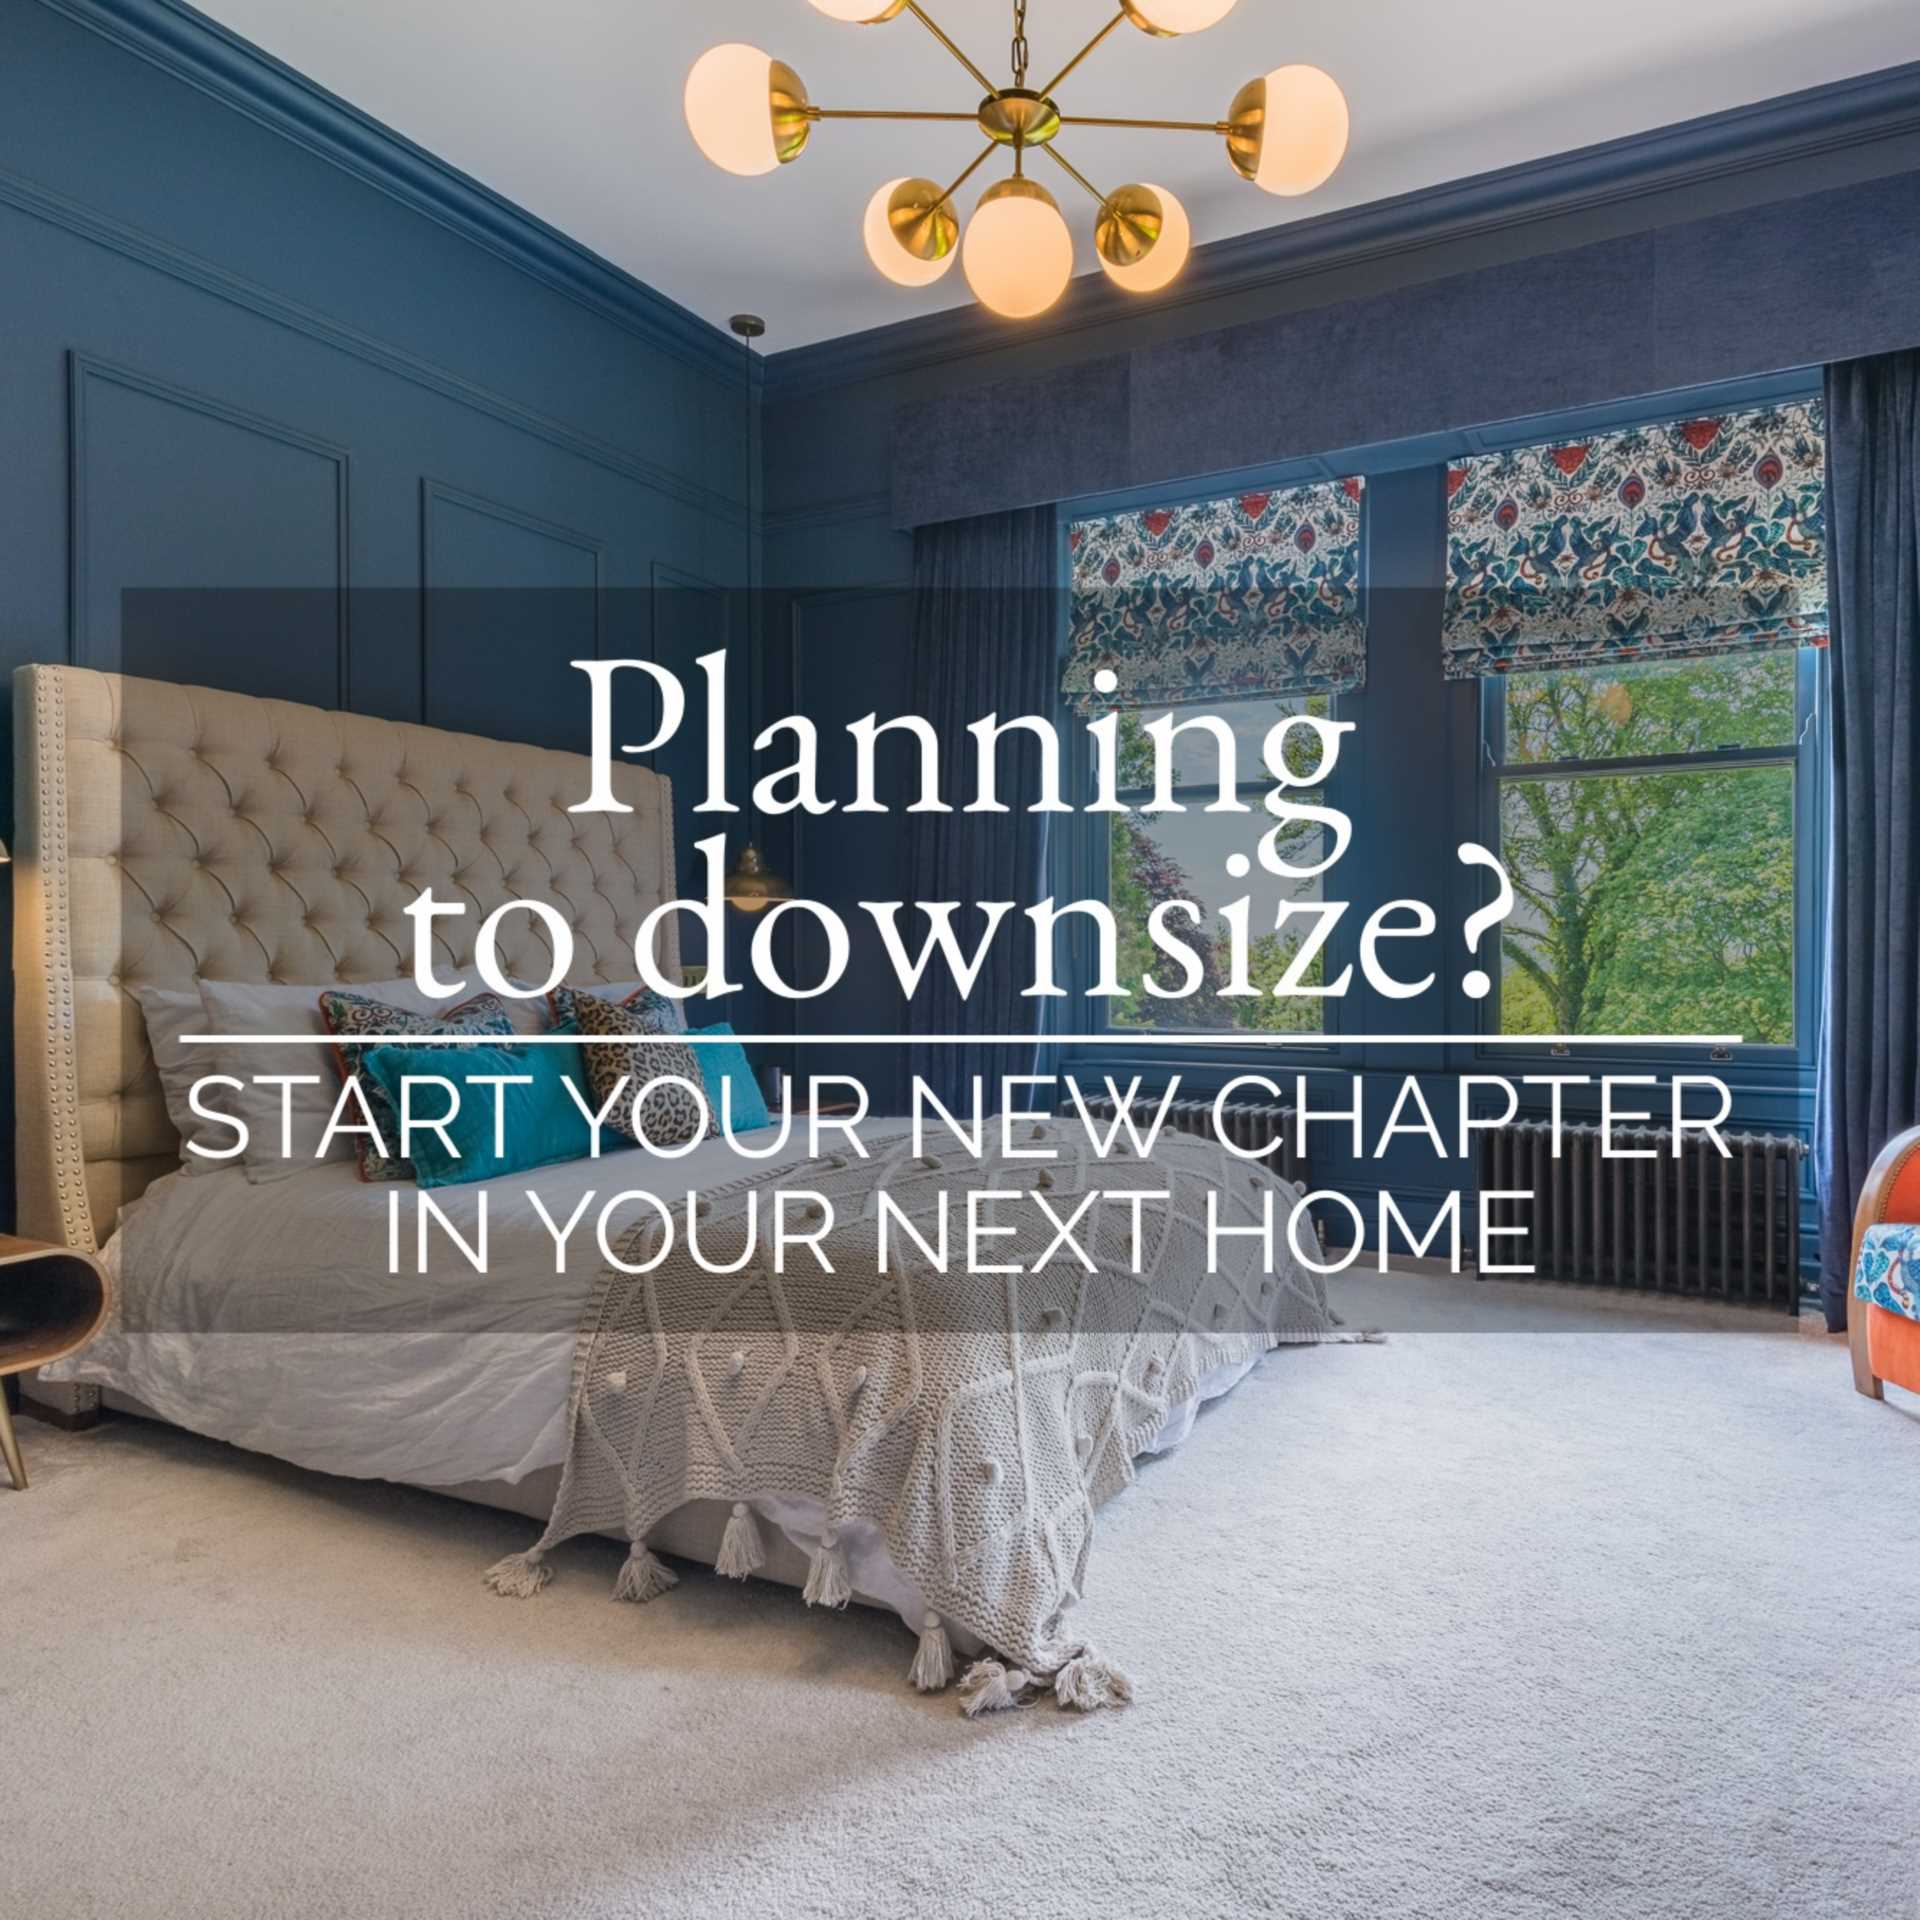 The secrets of downsizing seamlessly to your new home